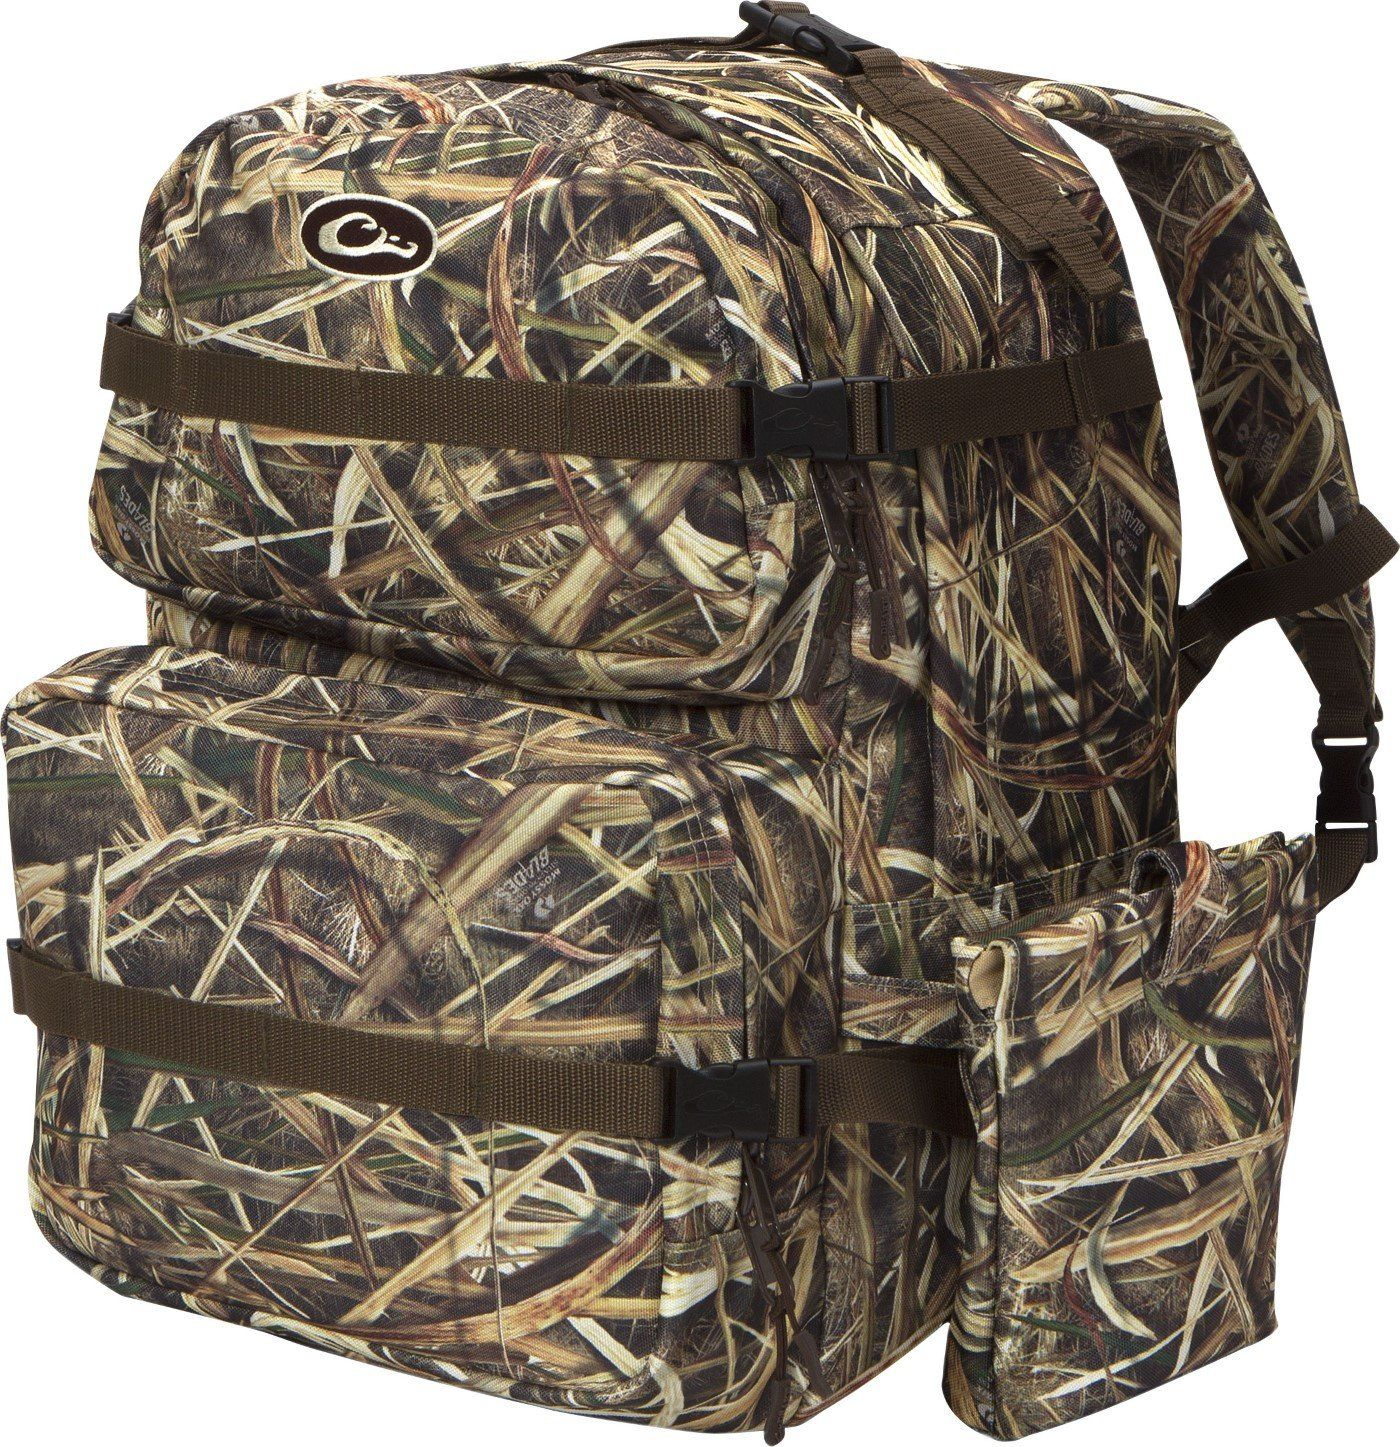 Pin By Bronson On Duck Hunting Hunting Backpacks Backpacks Hunting Bags